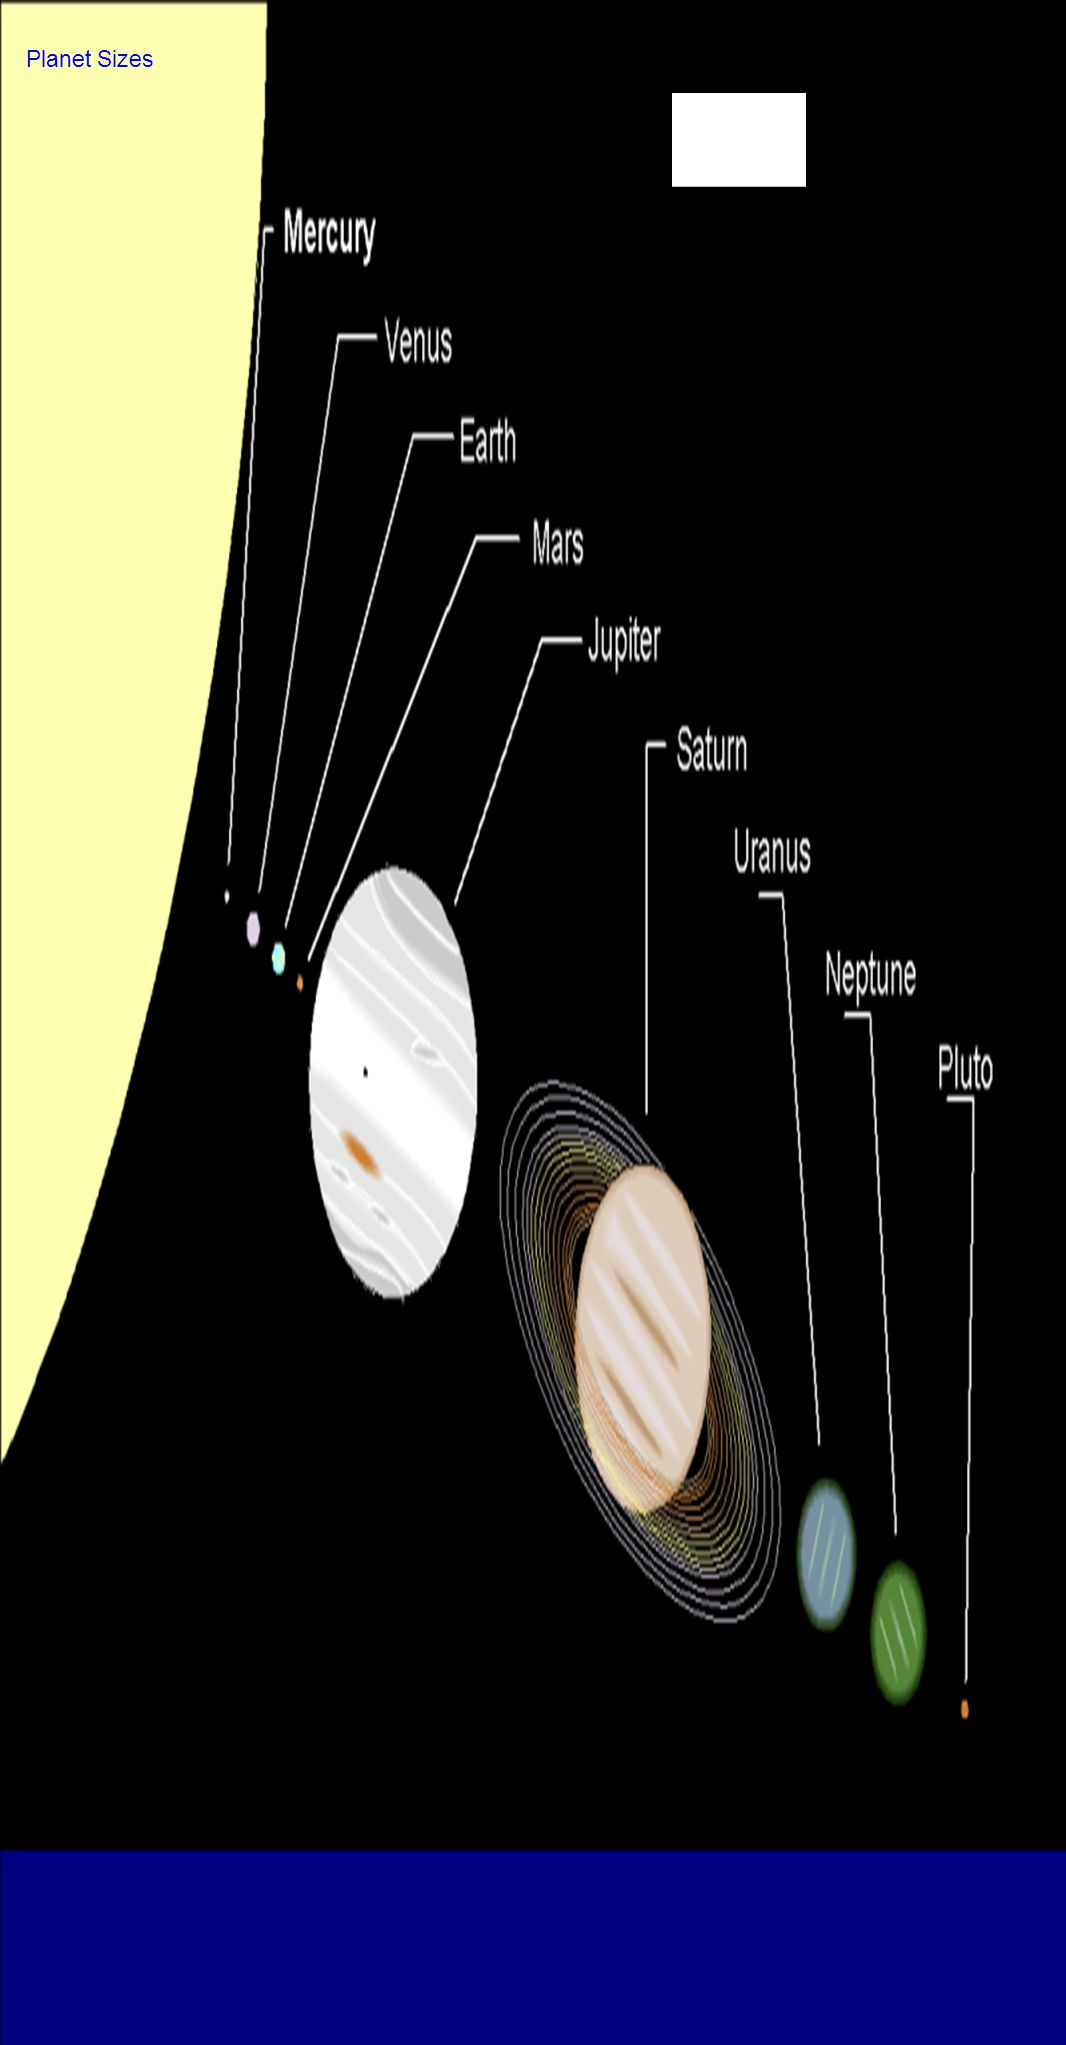 PLANETS LO: I will identify the known planets of the solar system.